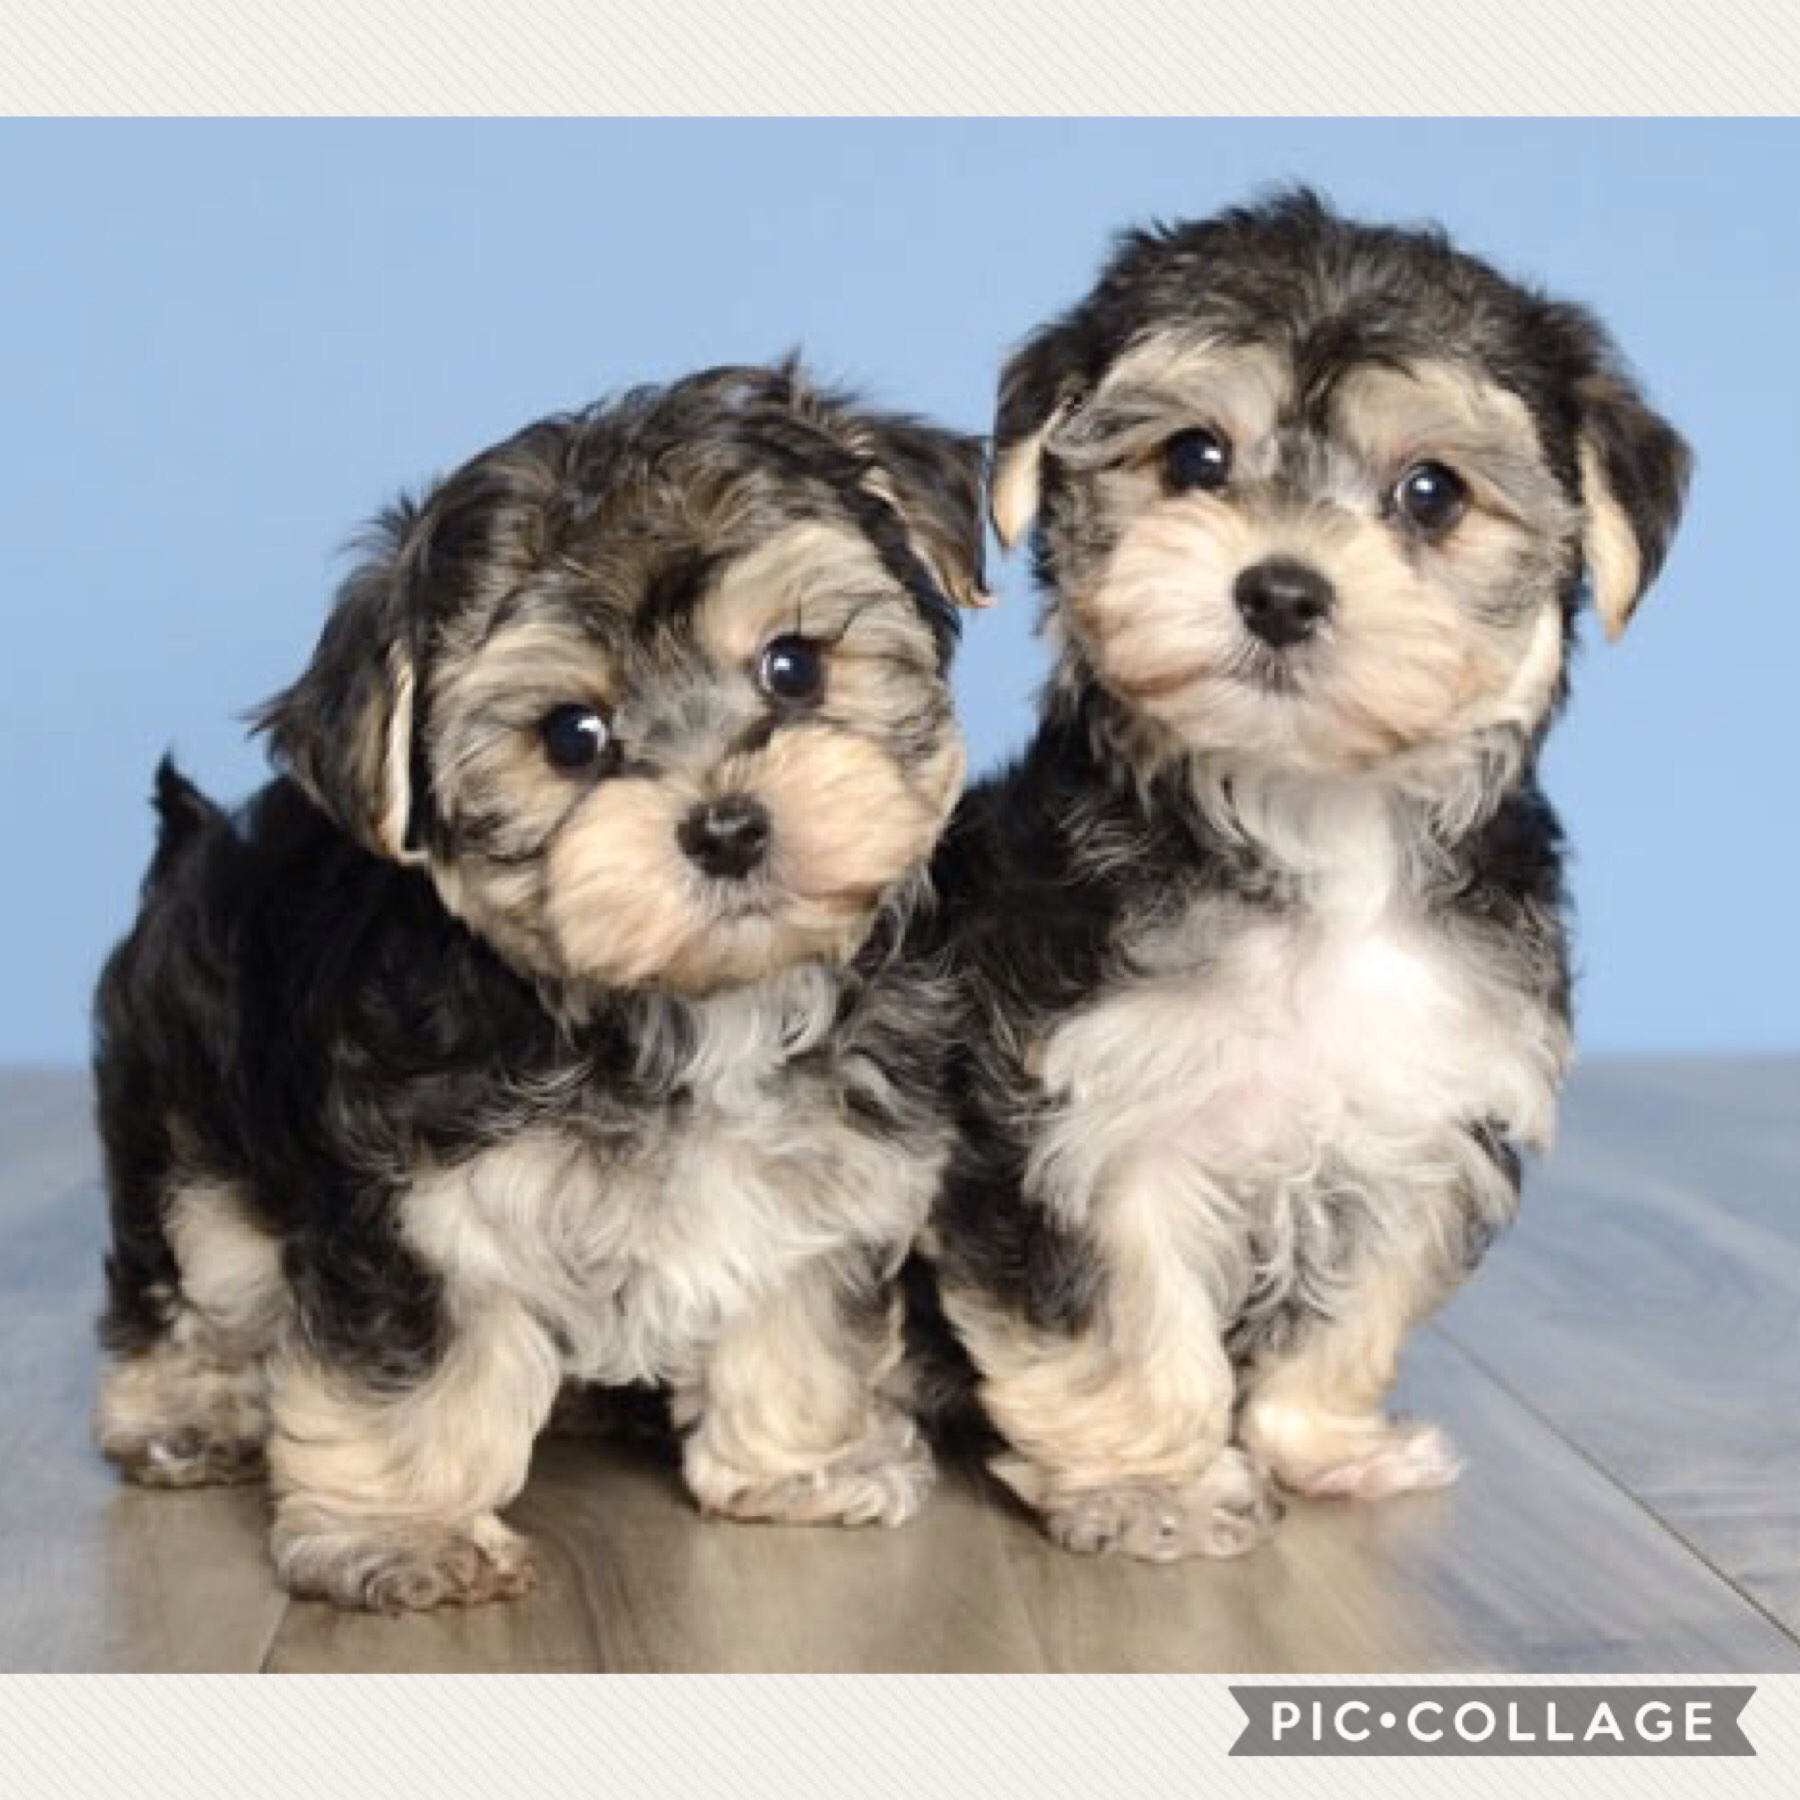 Look at my to new puppies # got them today